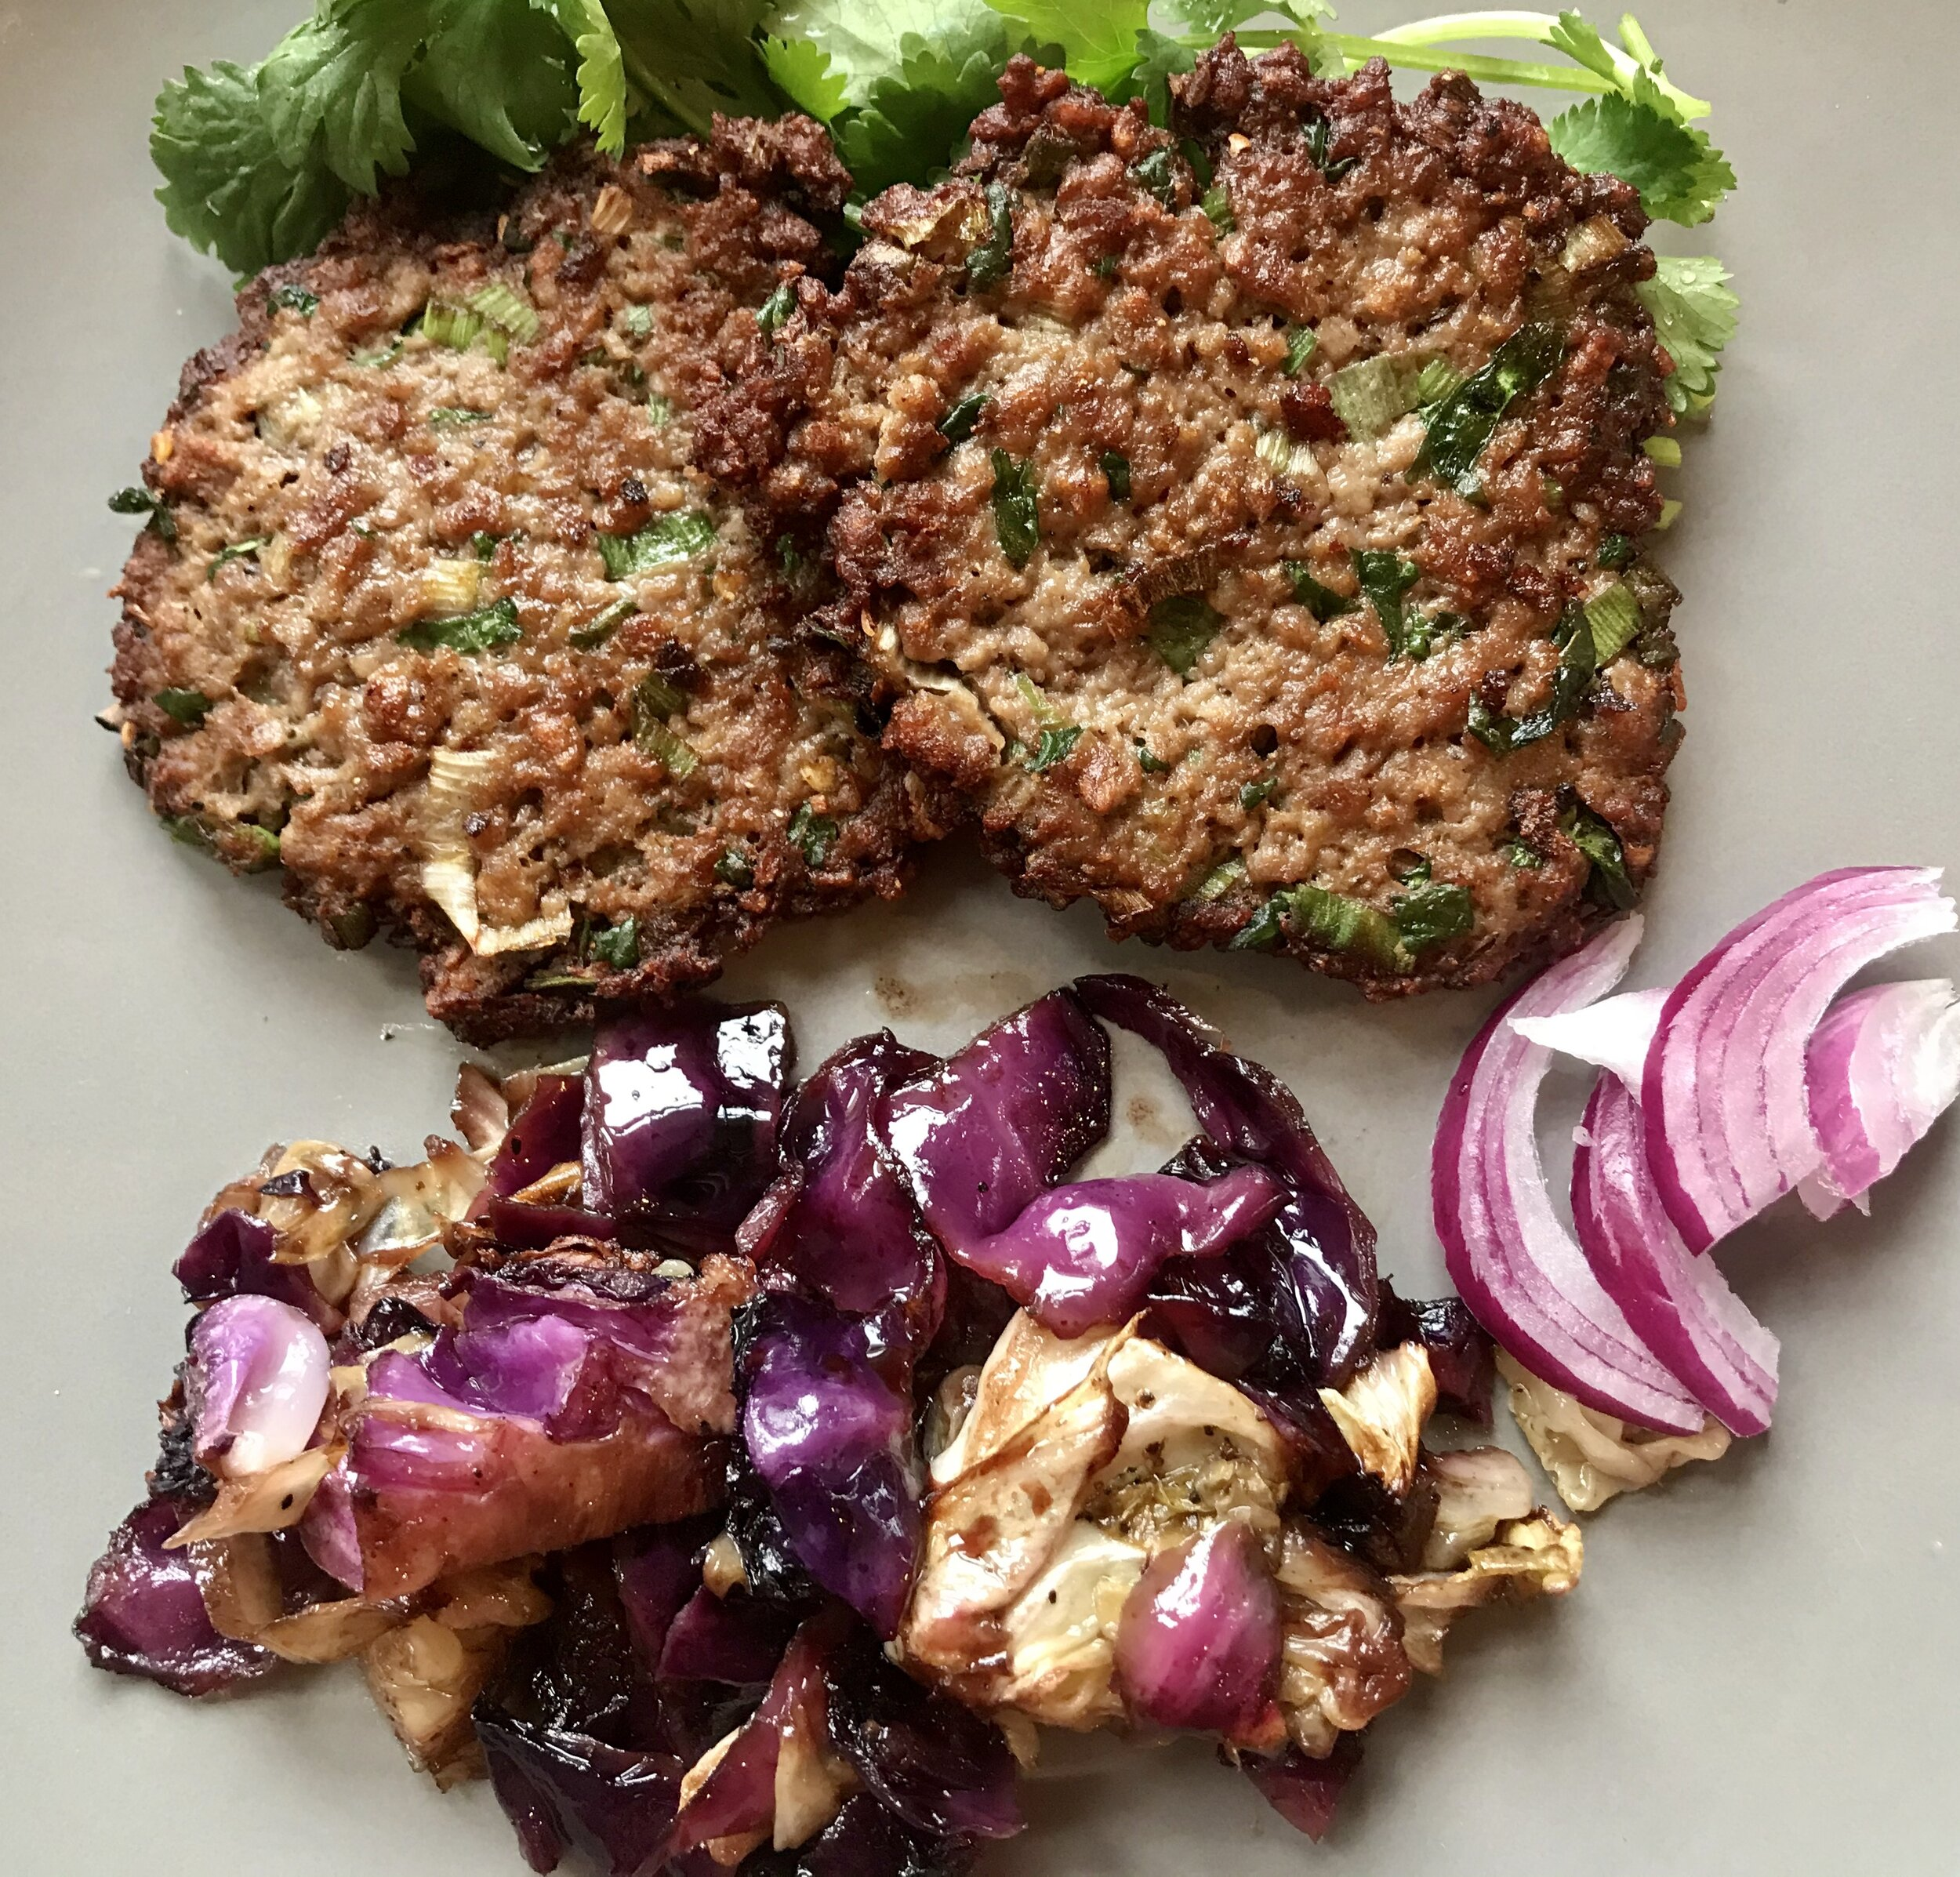 Byond meat, plant-based kebab with a side of roasted cabbage